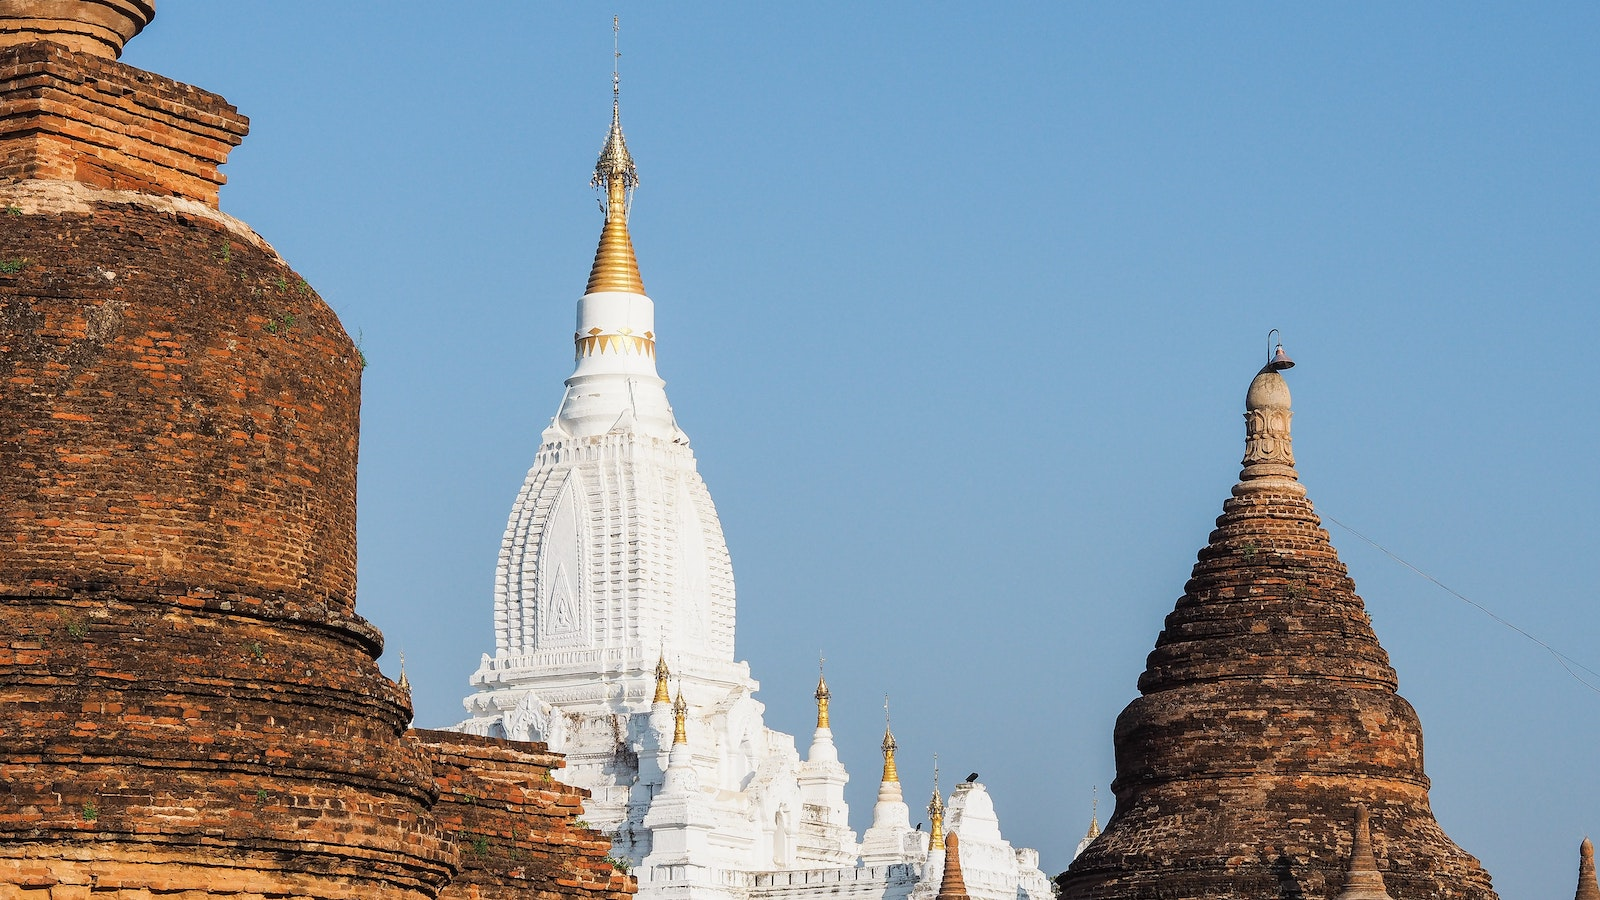 Lemyethna Temple in Myanmar